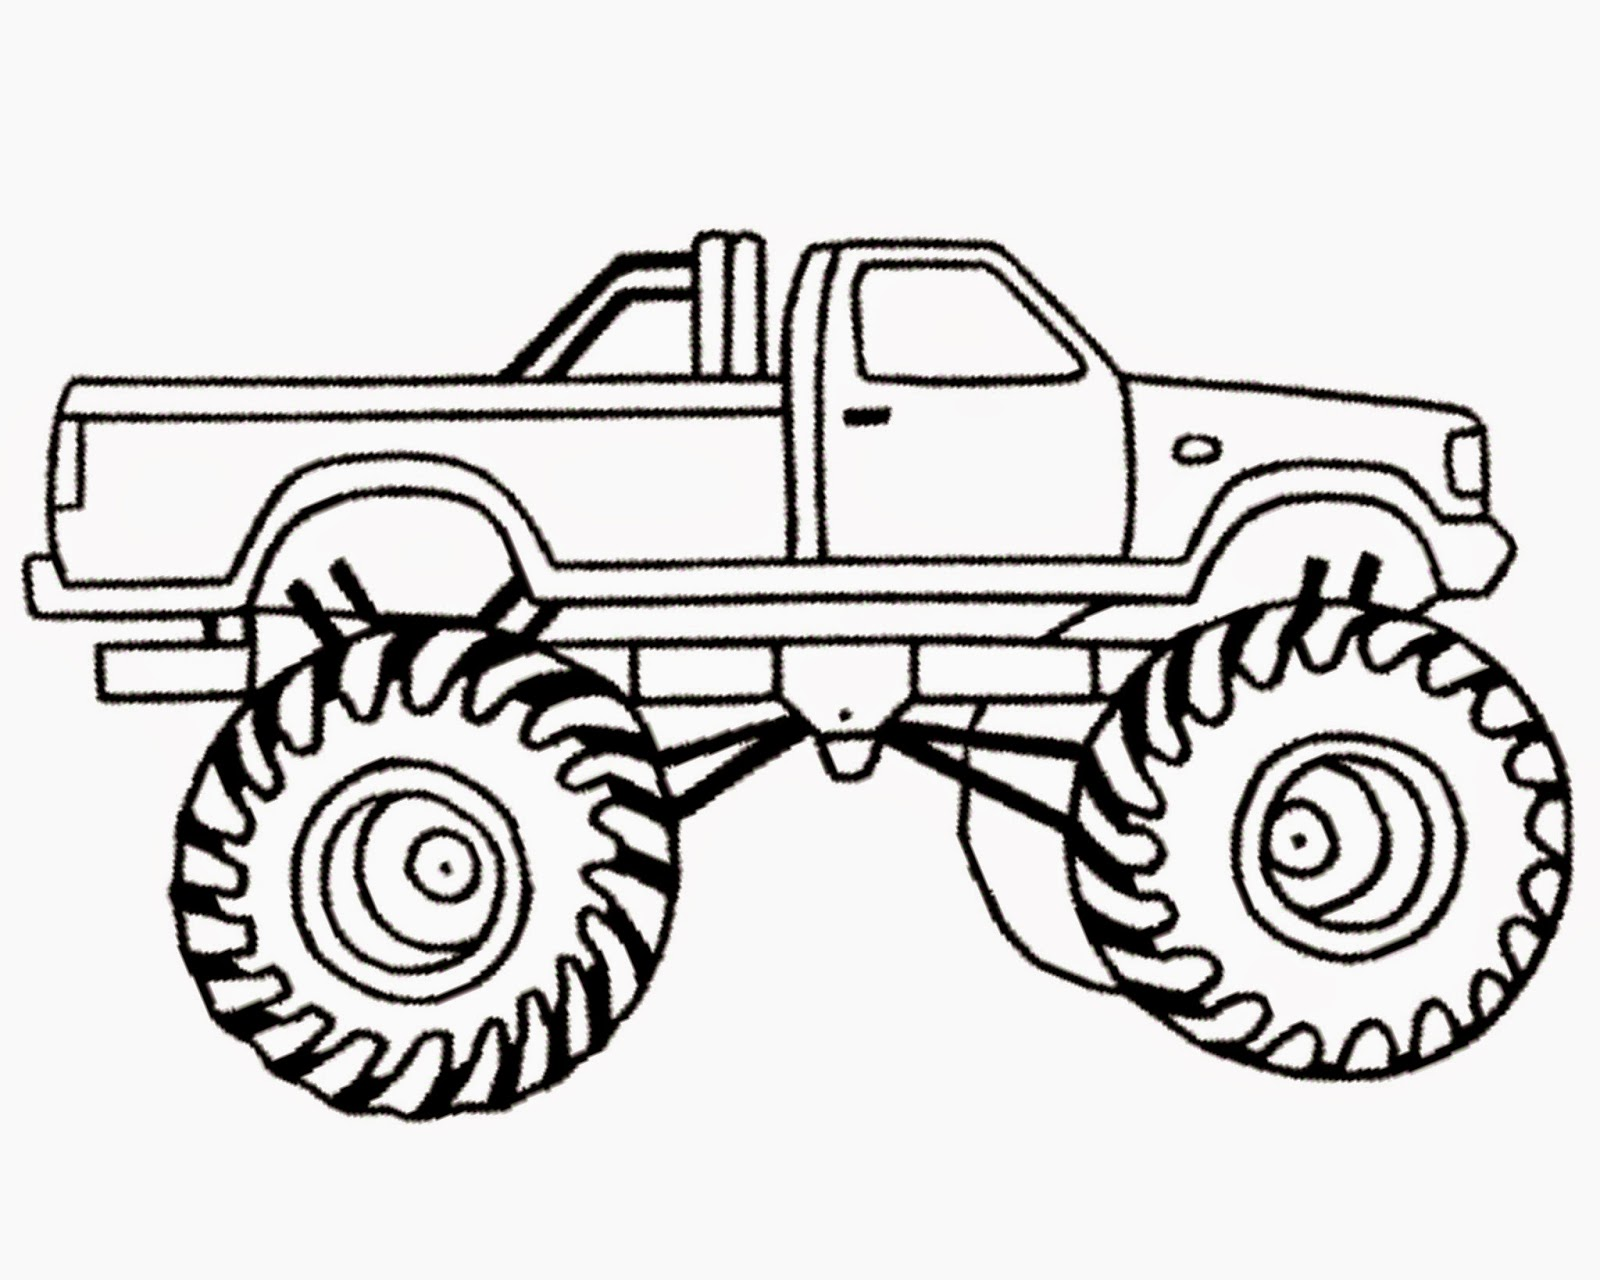 Old truck drawing at getdrawings free for personal use old old truck drawing 2 old truck